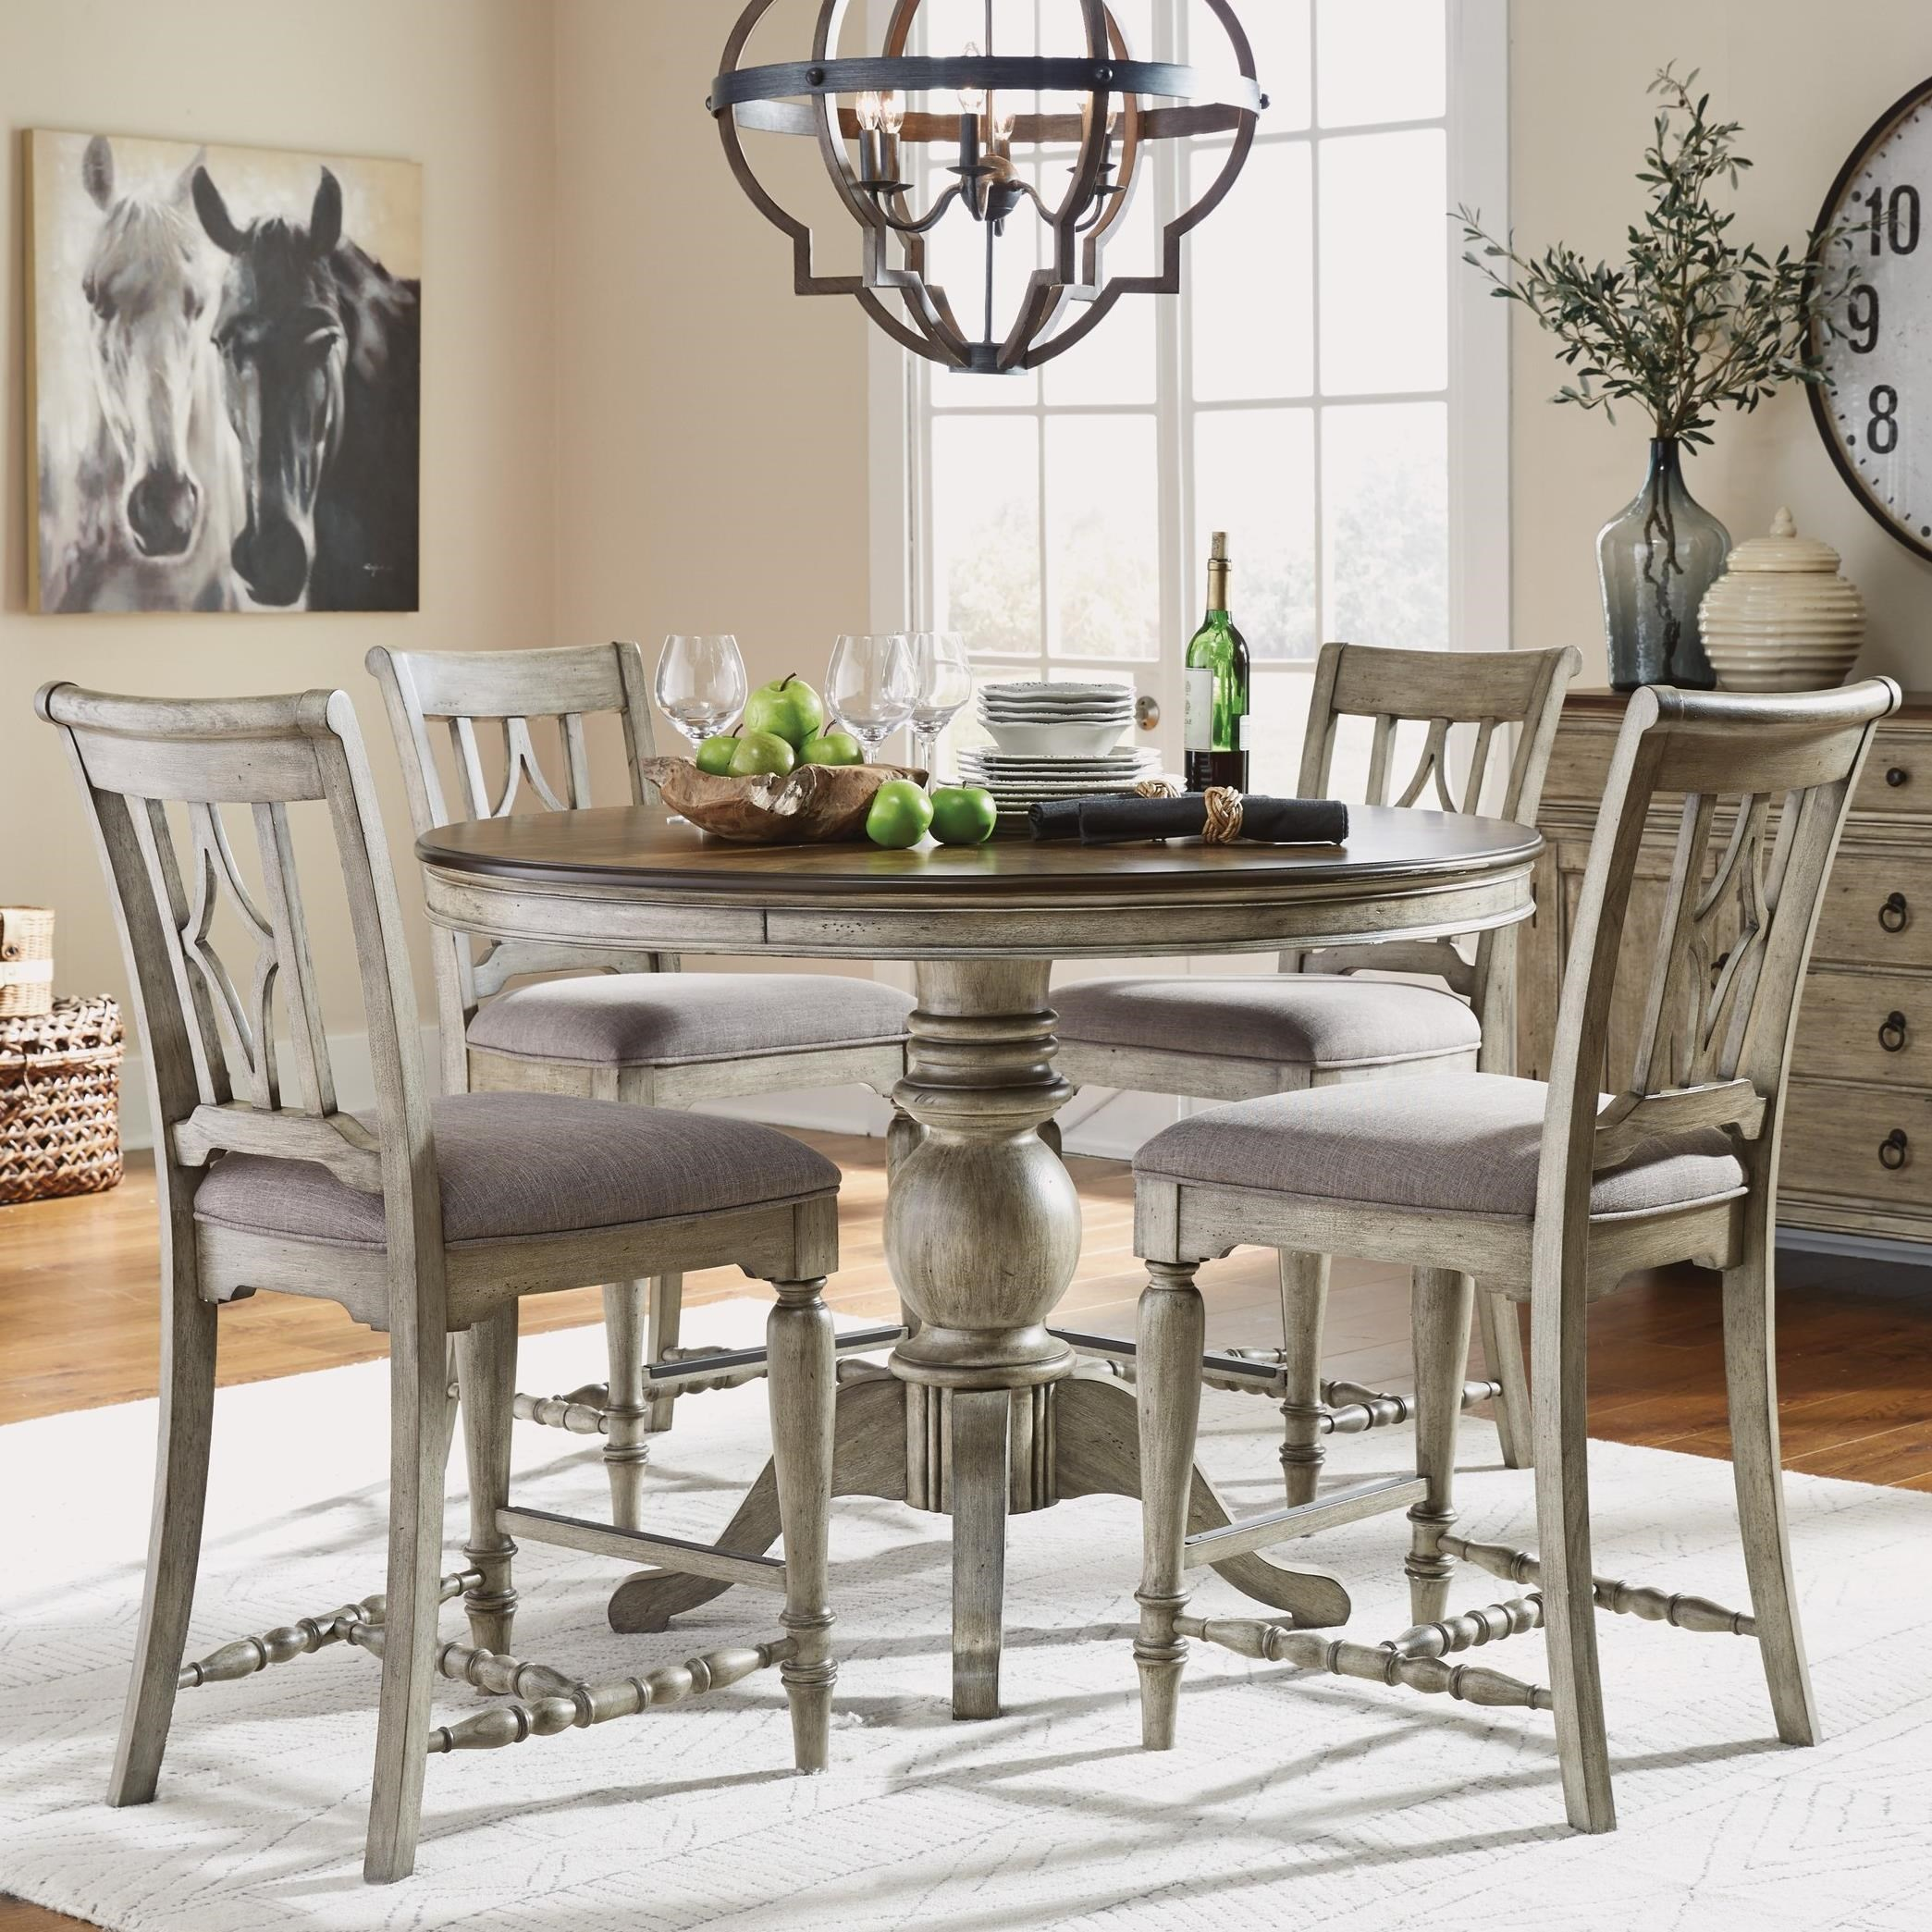 Plymouth 5-Piece Counter Height Table and Chair Set by Flexsteel Wynwood Collection at Fashion Furniture